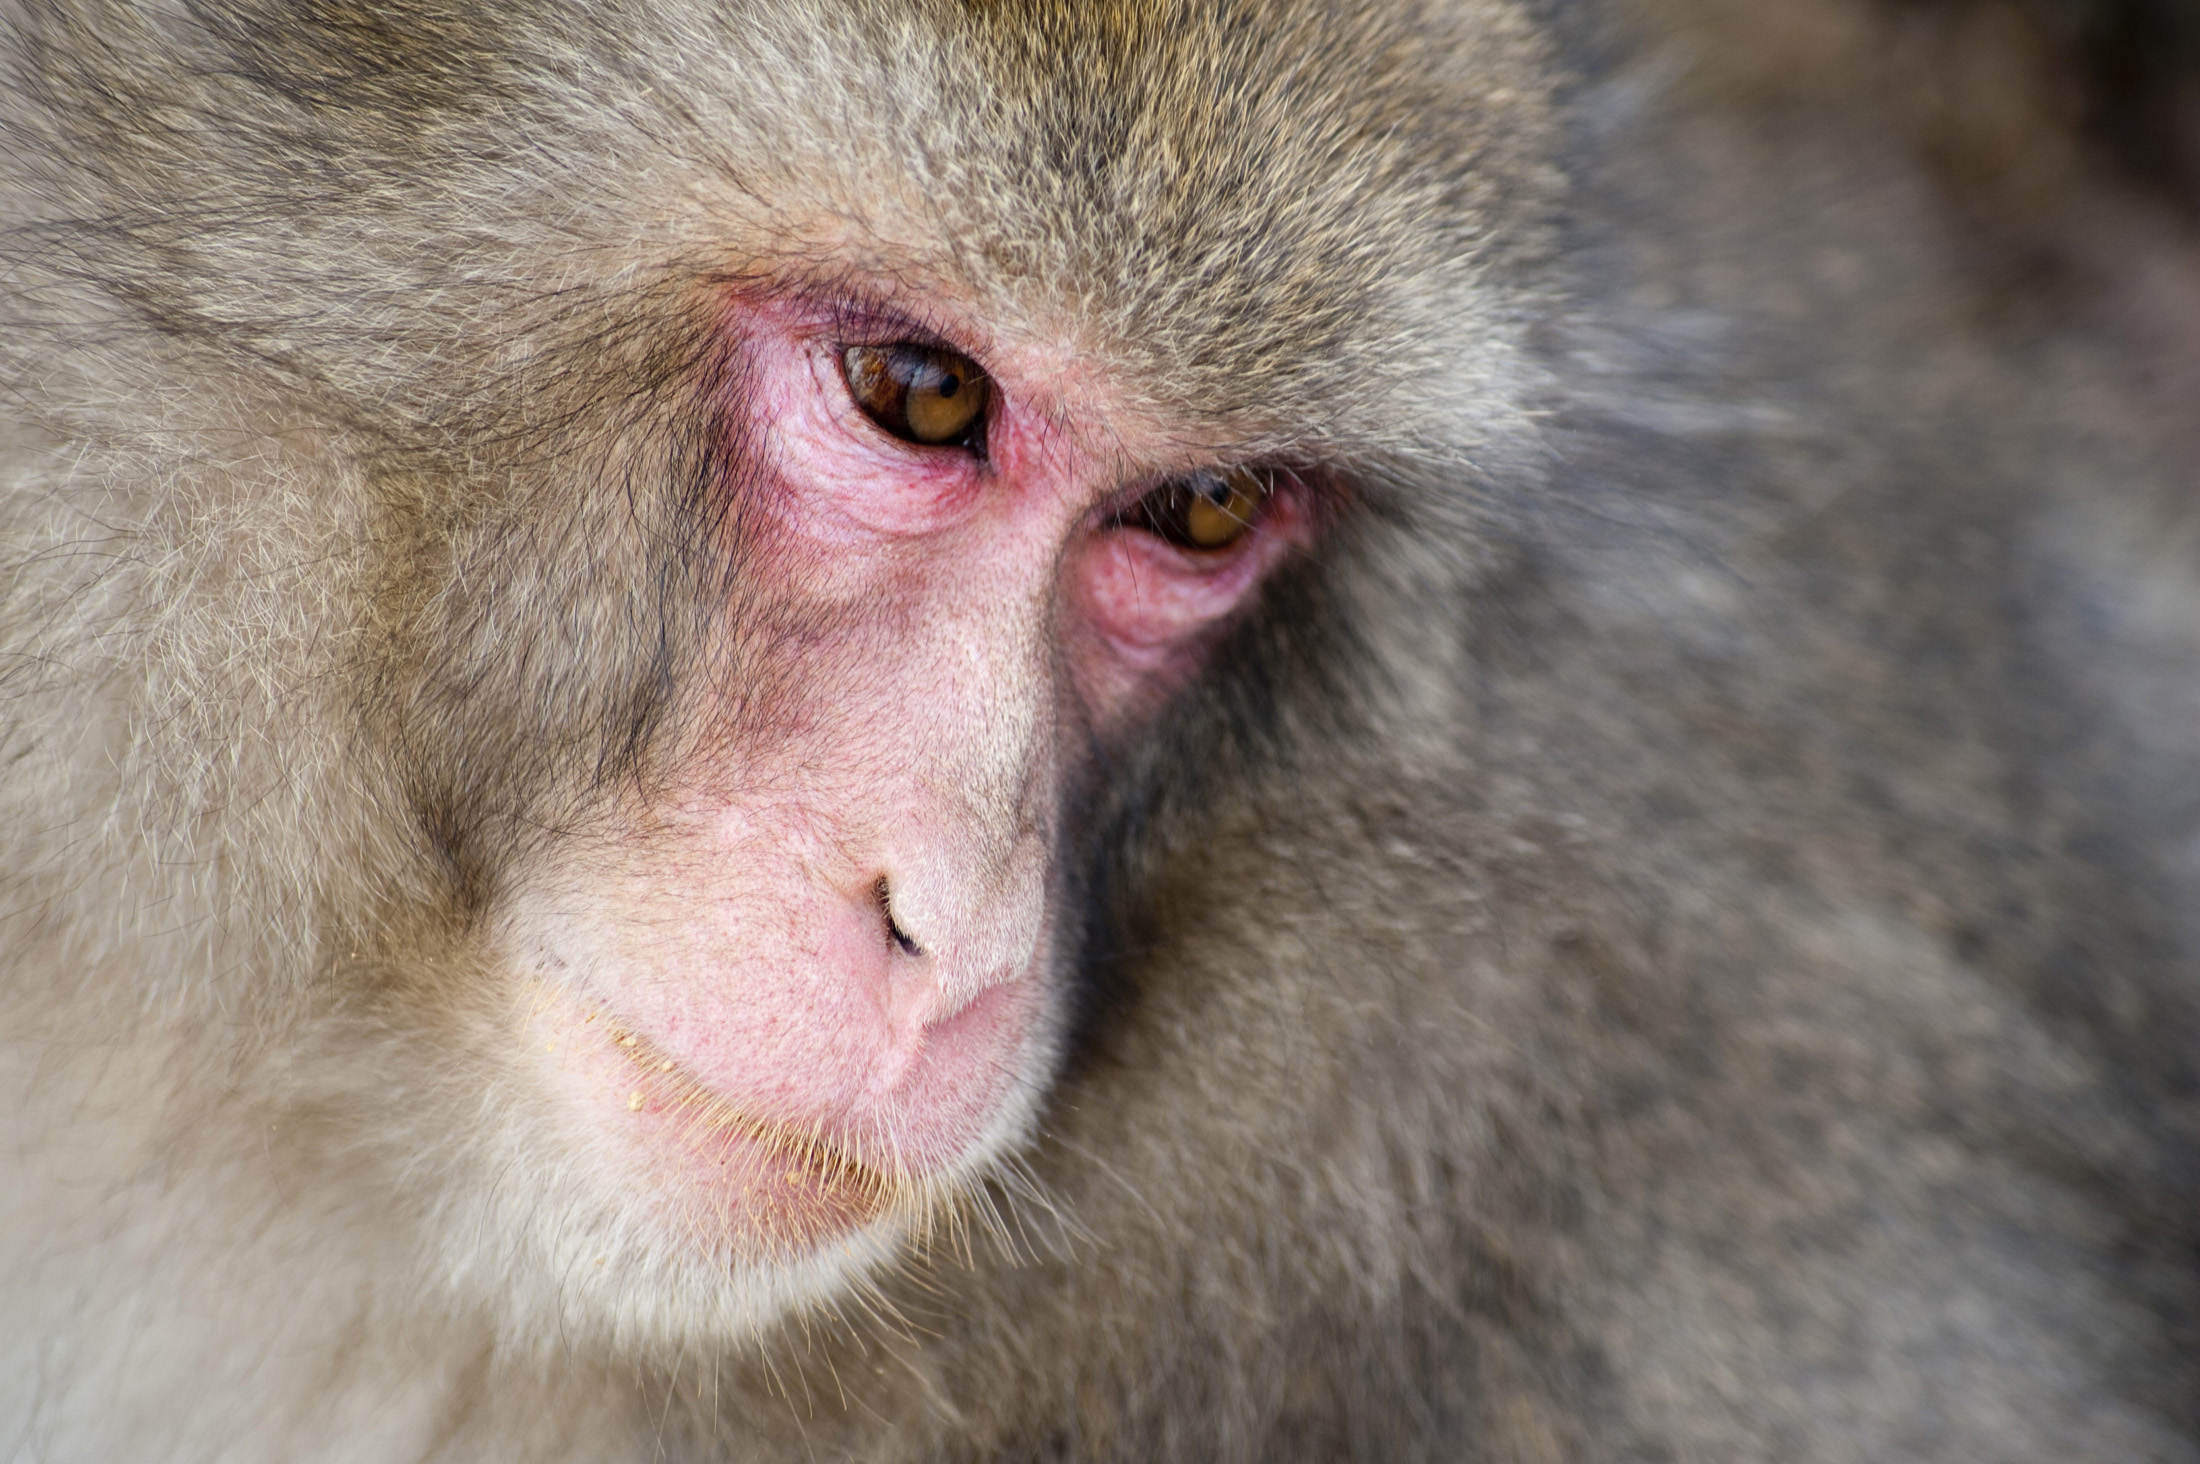 Free Stock photo of snow monkey face | Photoeverywhere